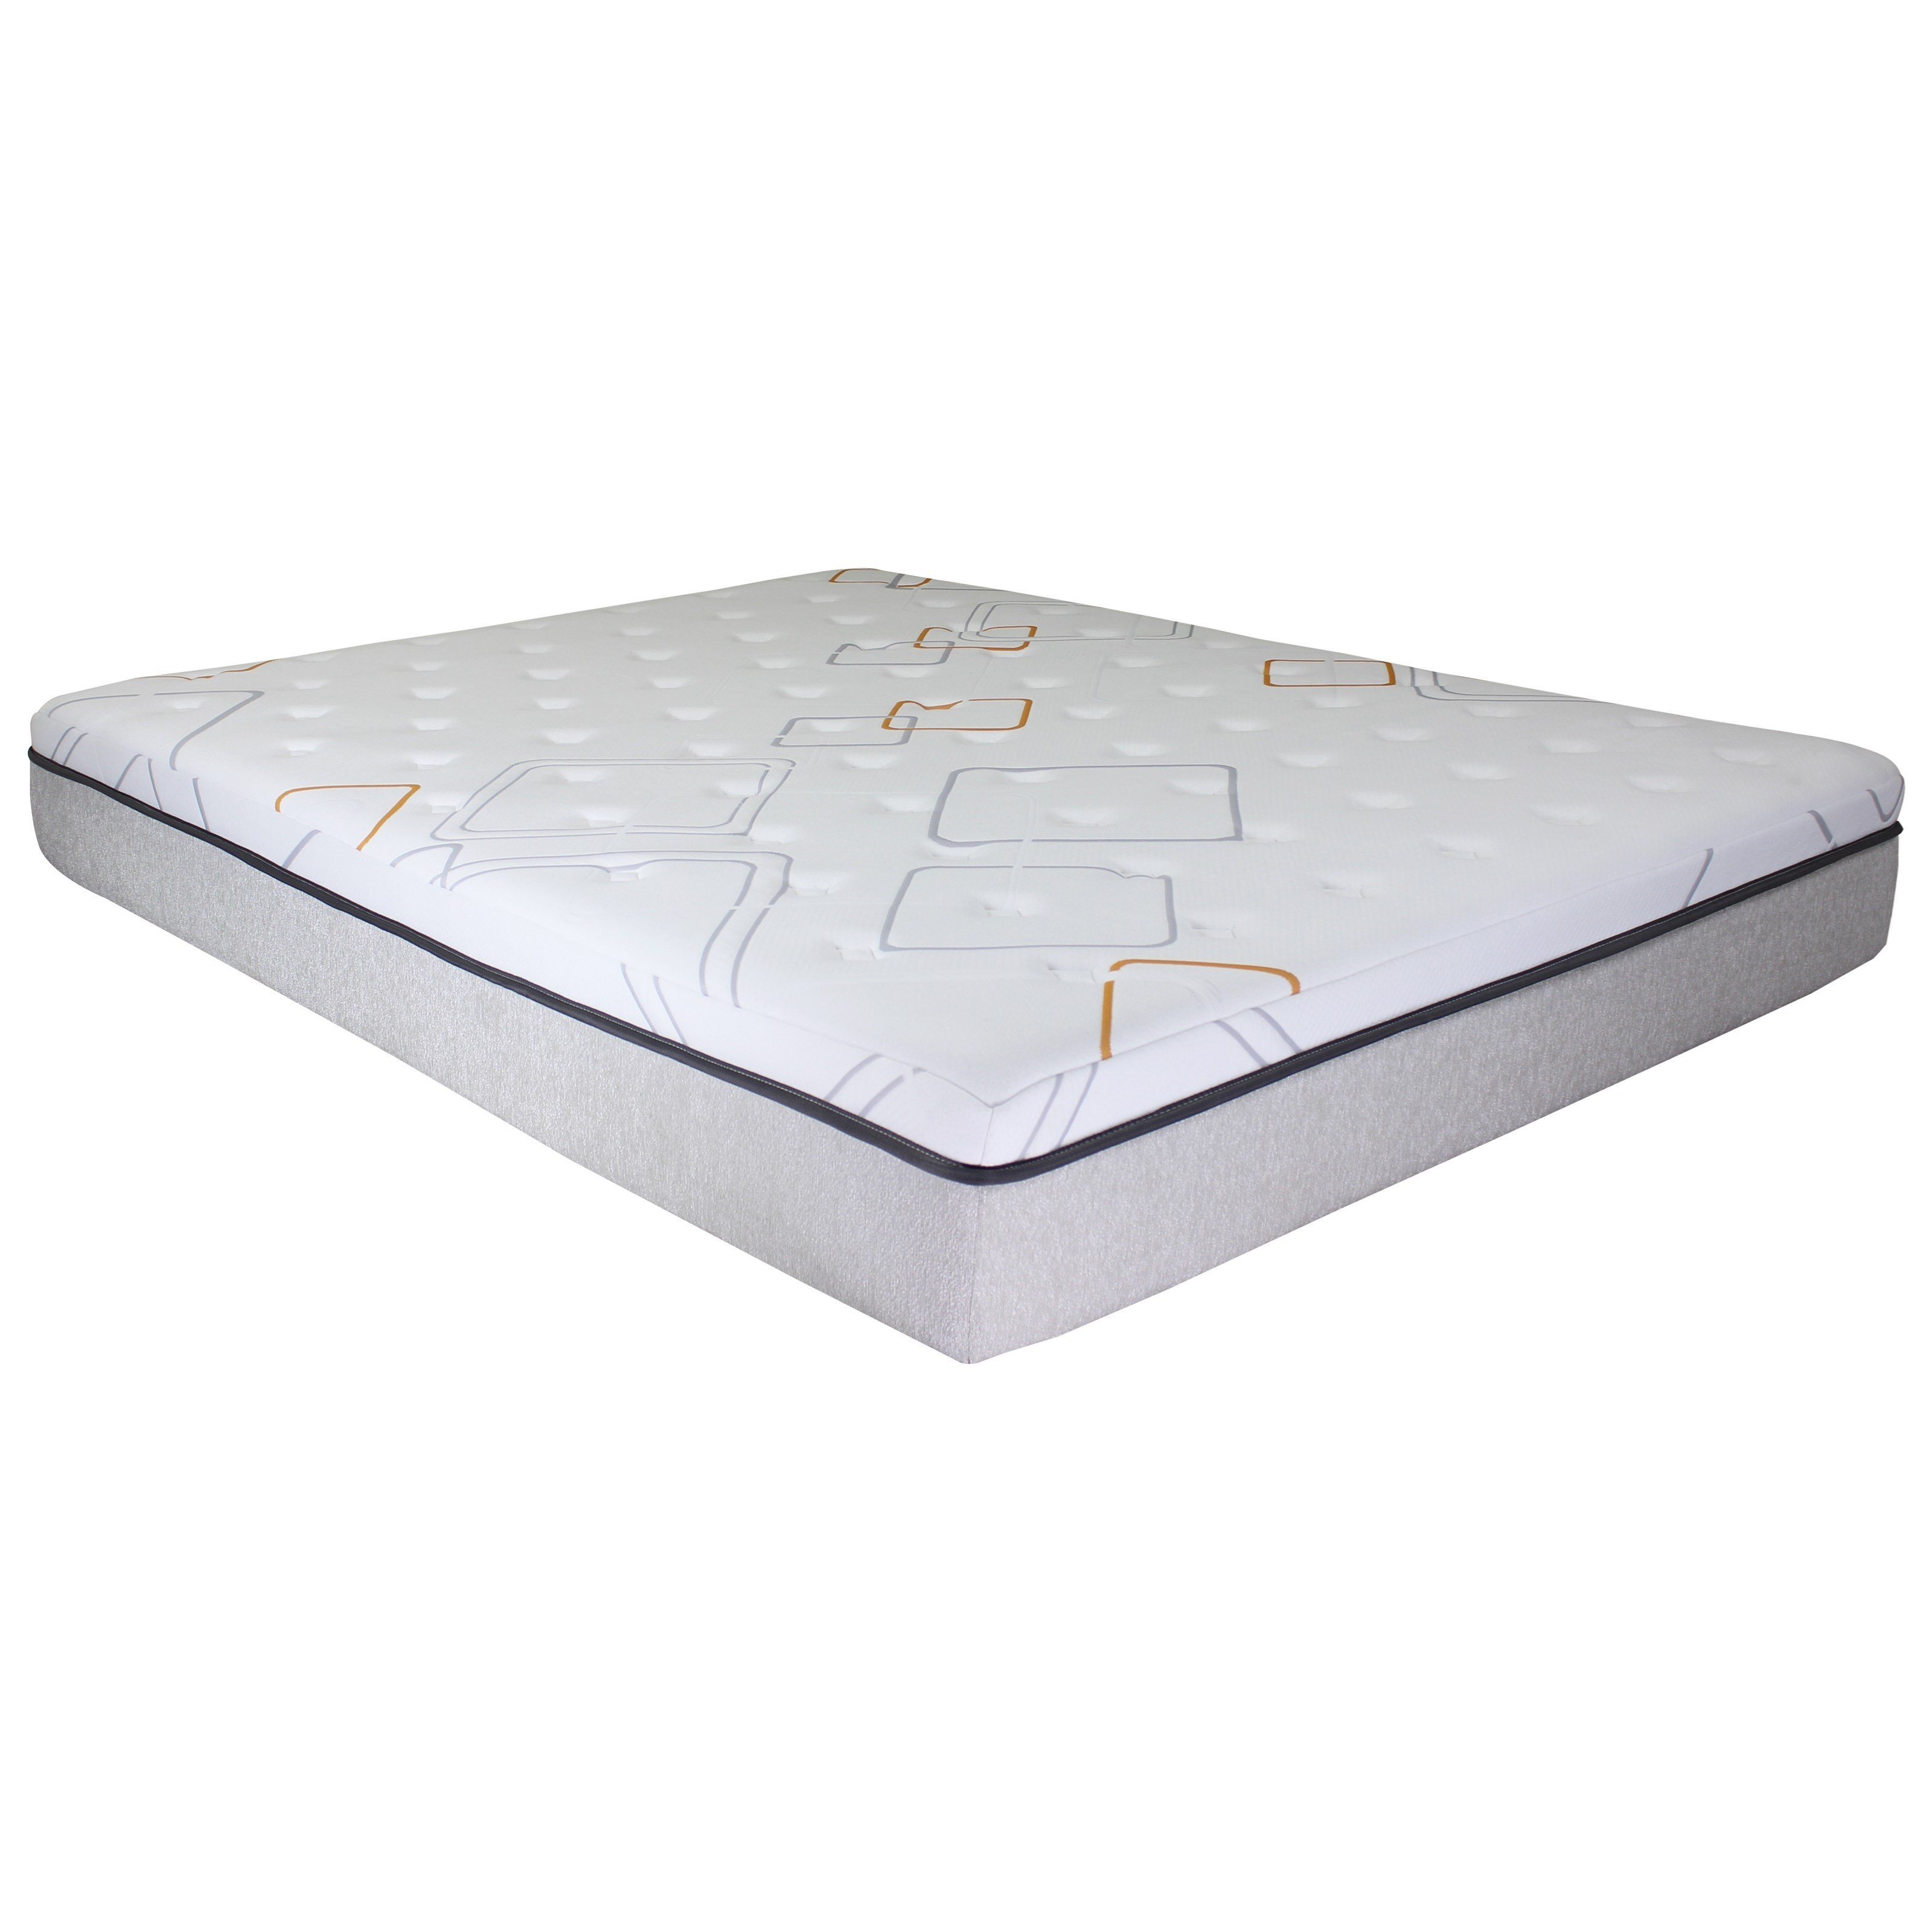 """Serenity 10 King 10"""" Hybrid Mattress by BedTech at Home Furnishings Direct"""